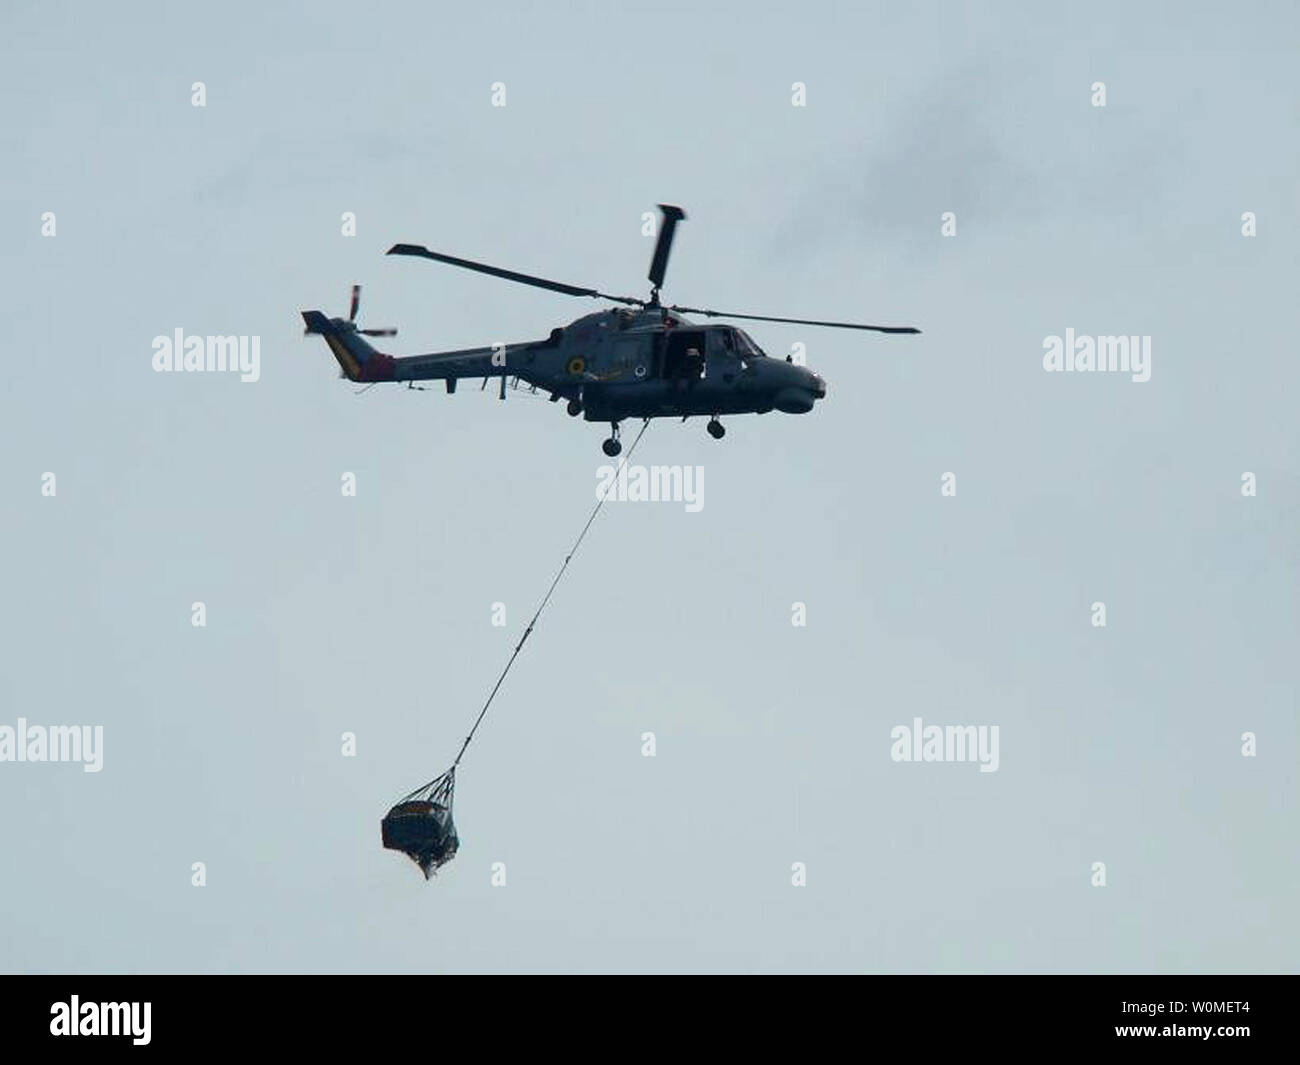 This photo released by the Brazilian Air Force on June 7, 2009 shows a helicopter lifting debris recover from the missing Air France jet out of the Atlantic Ocean, June 8, 2009. The U.S. Navy is sending a team equipped with underwater listening devices to assist in the search for the missing black box. (UPI Photo/Brazilian Air Force) - Stock Image